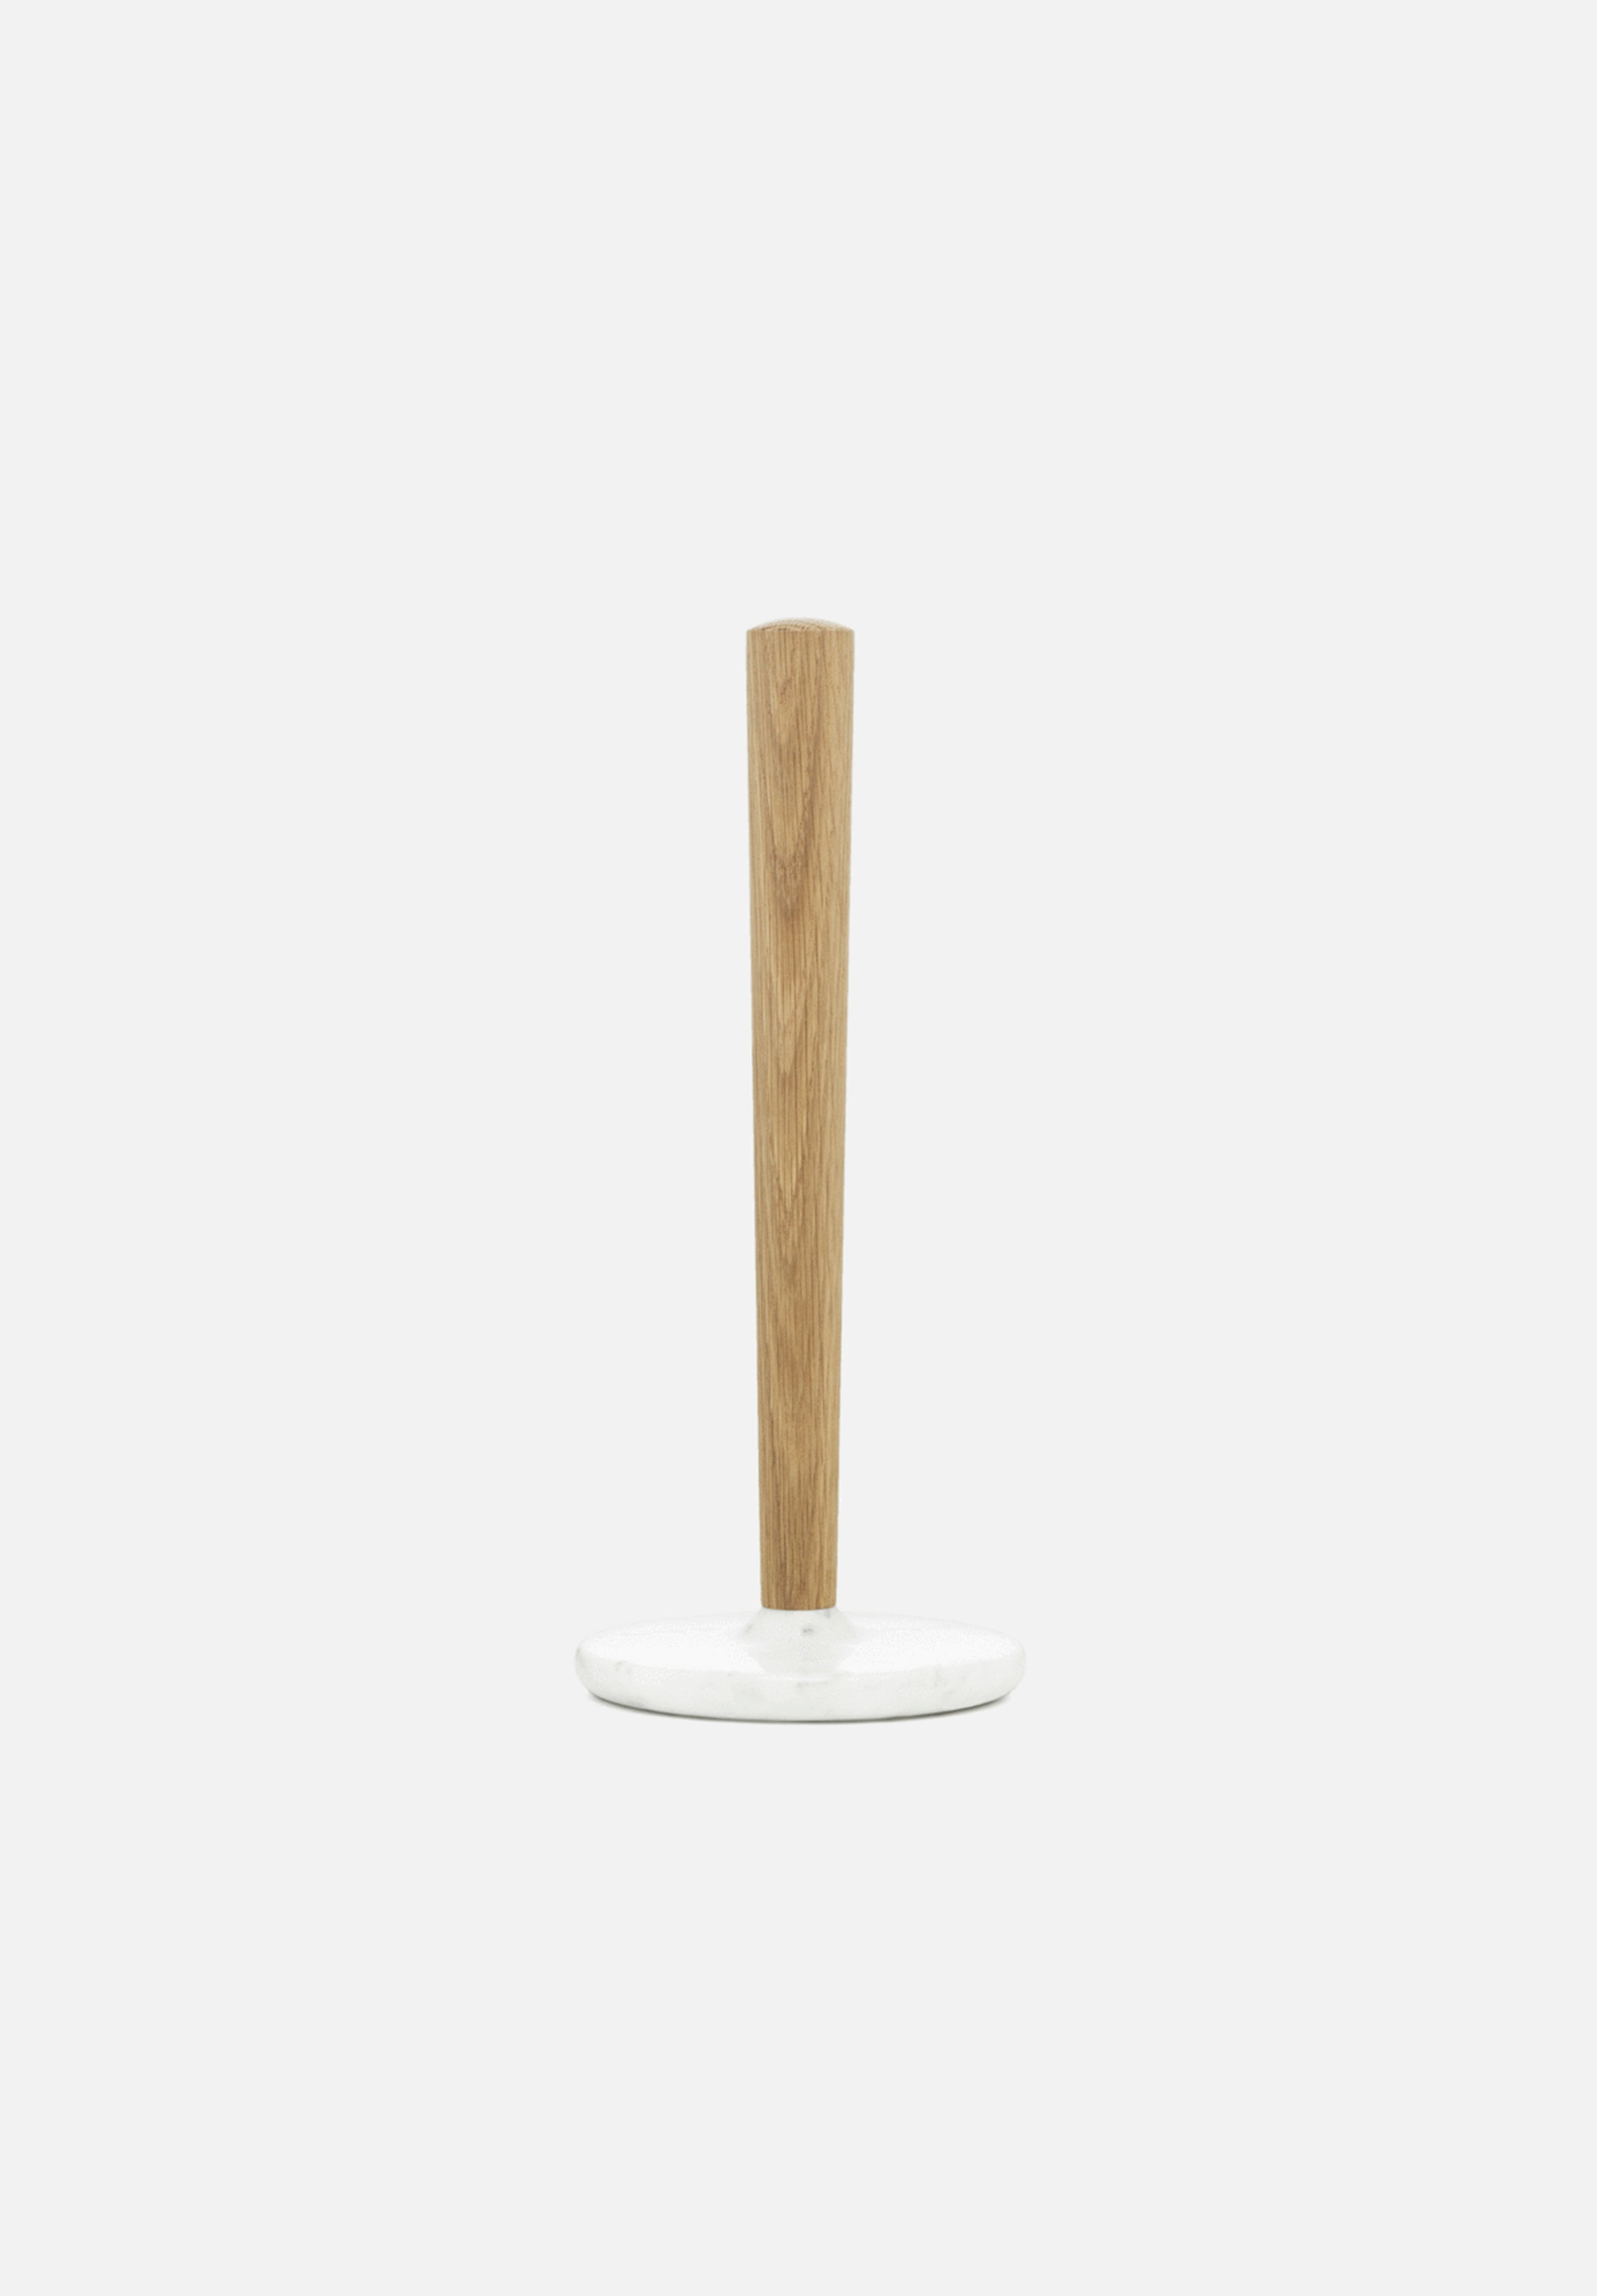 Craft Paper Towel Holder-Simon Legald-Normann Copenhagen-Average-canada-design-store-danish-denmark-furniture-interior